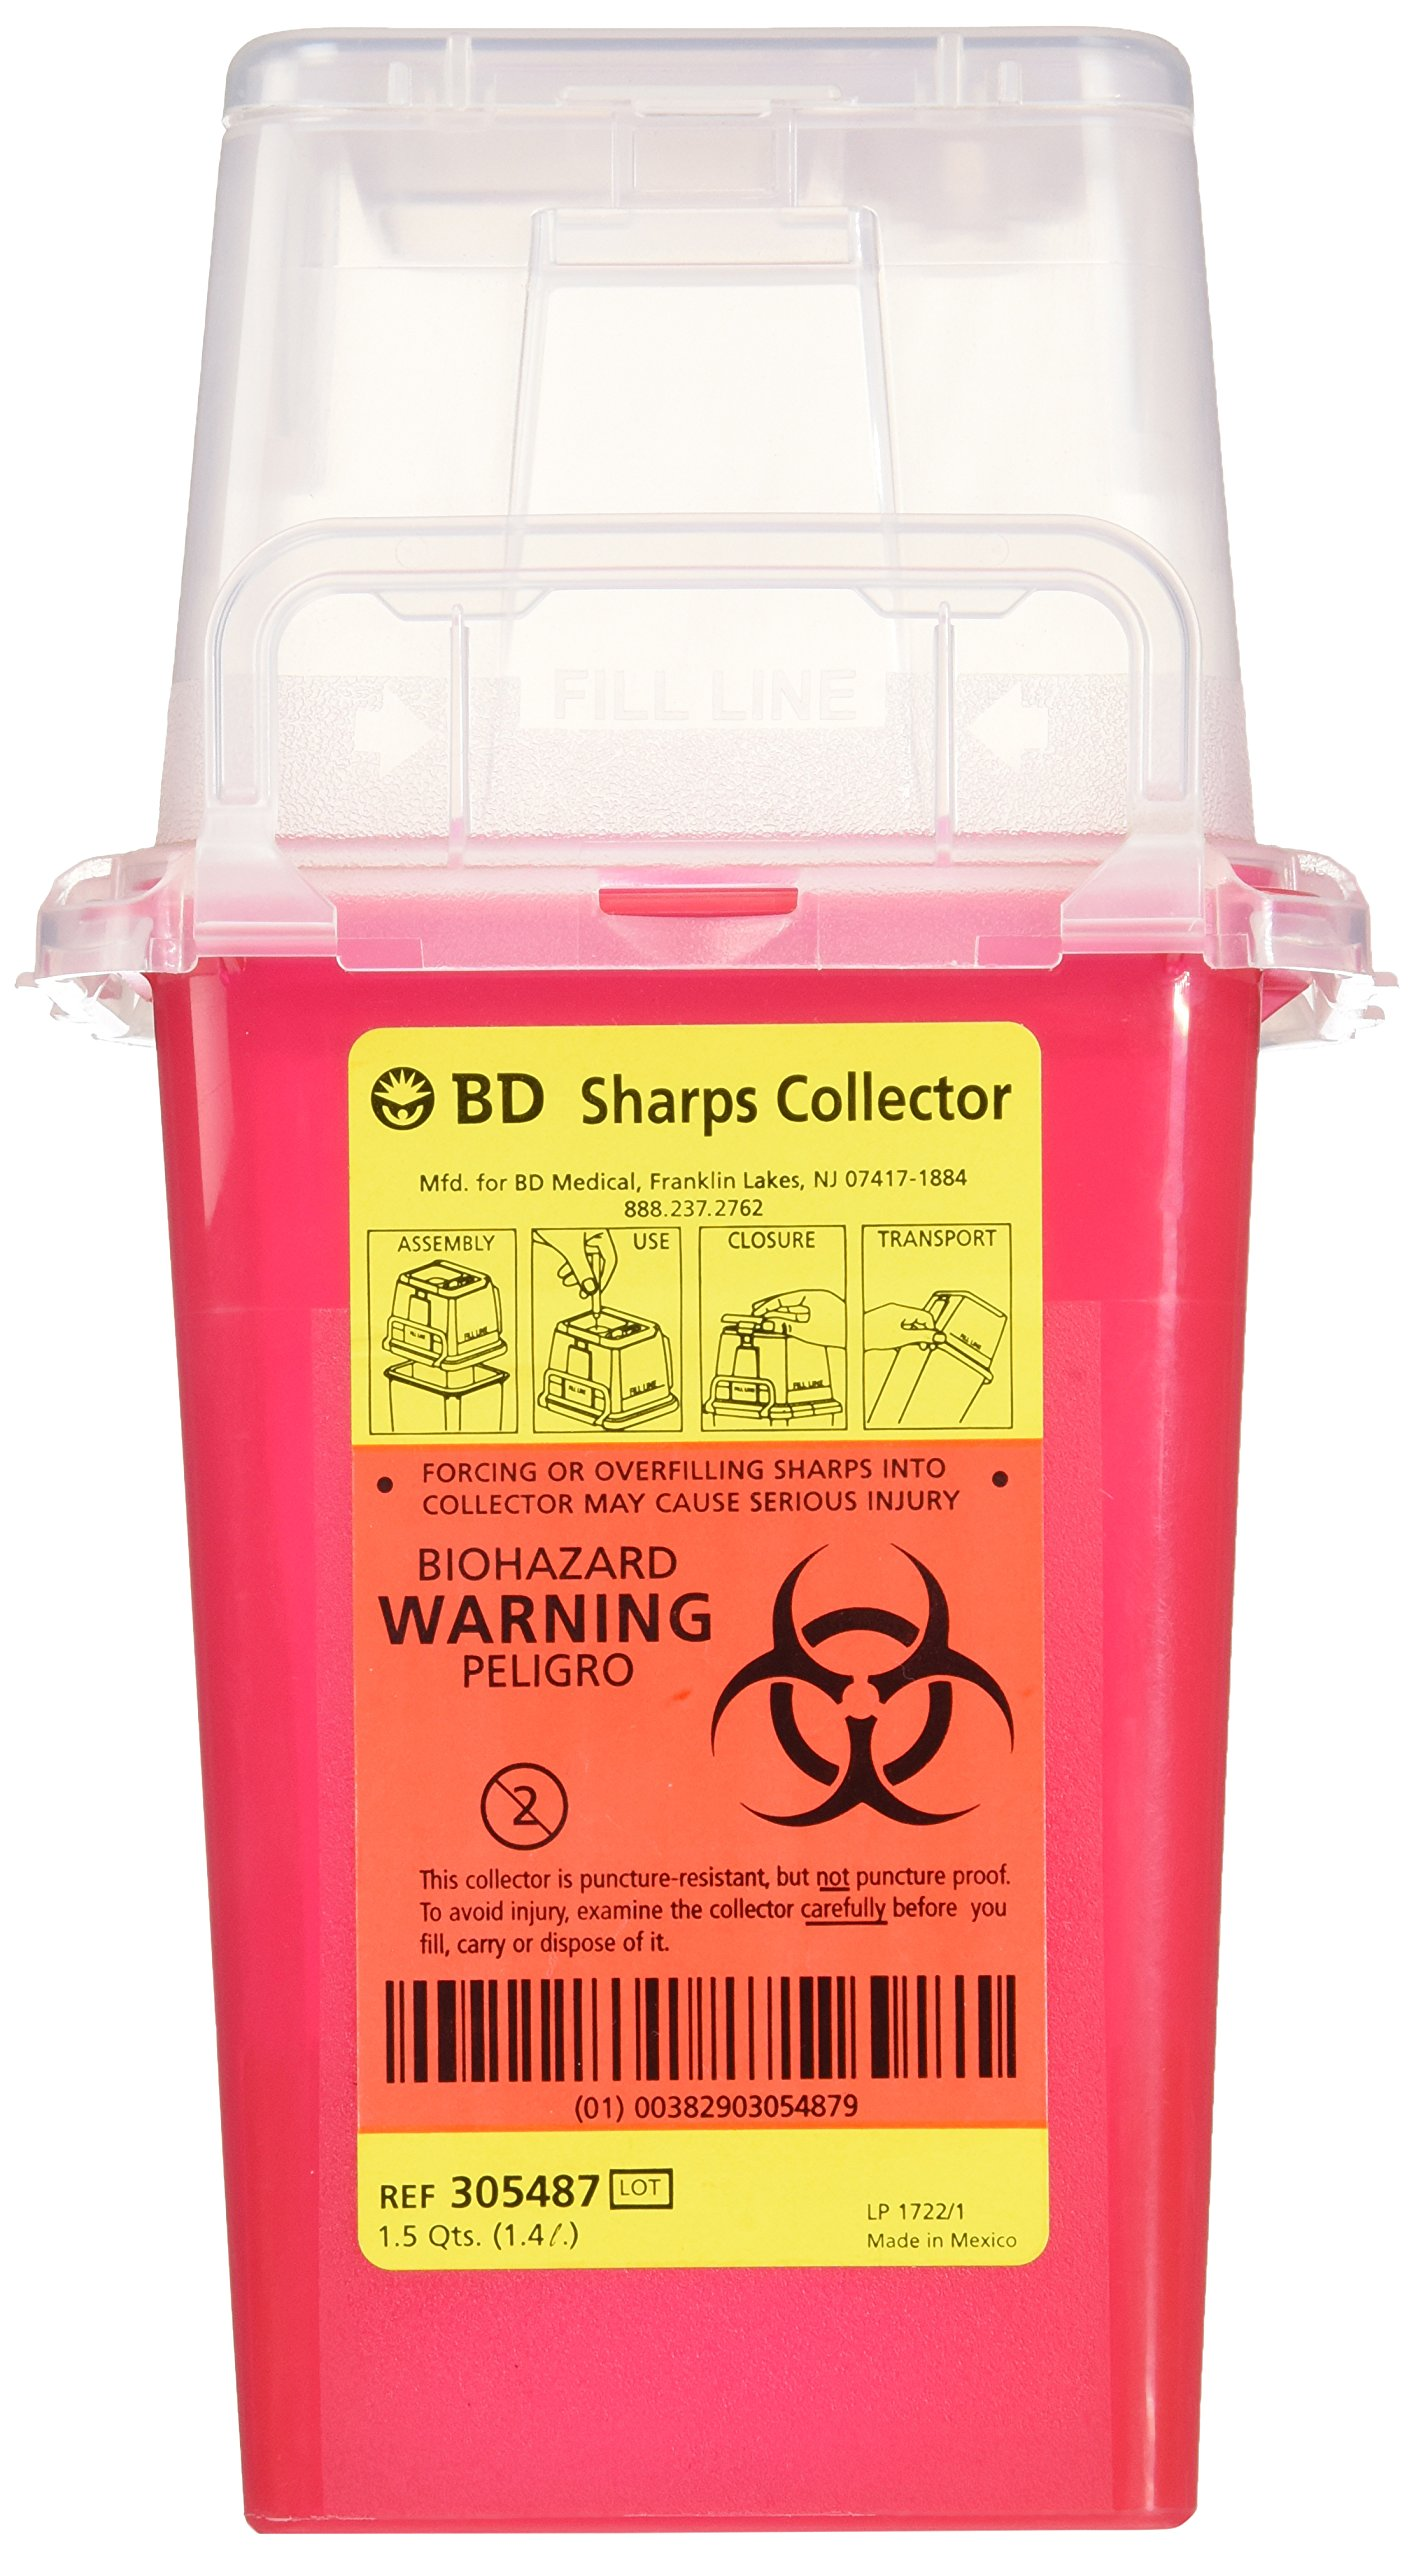 305487 SHARP COLLECTOR 1.5 QT